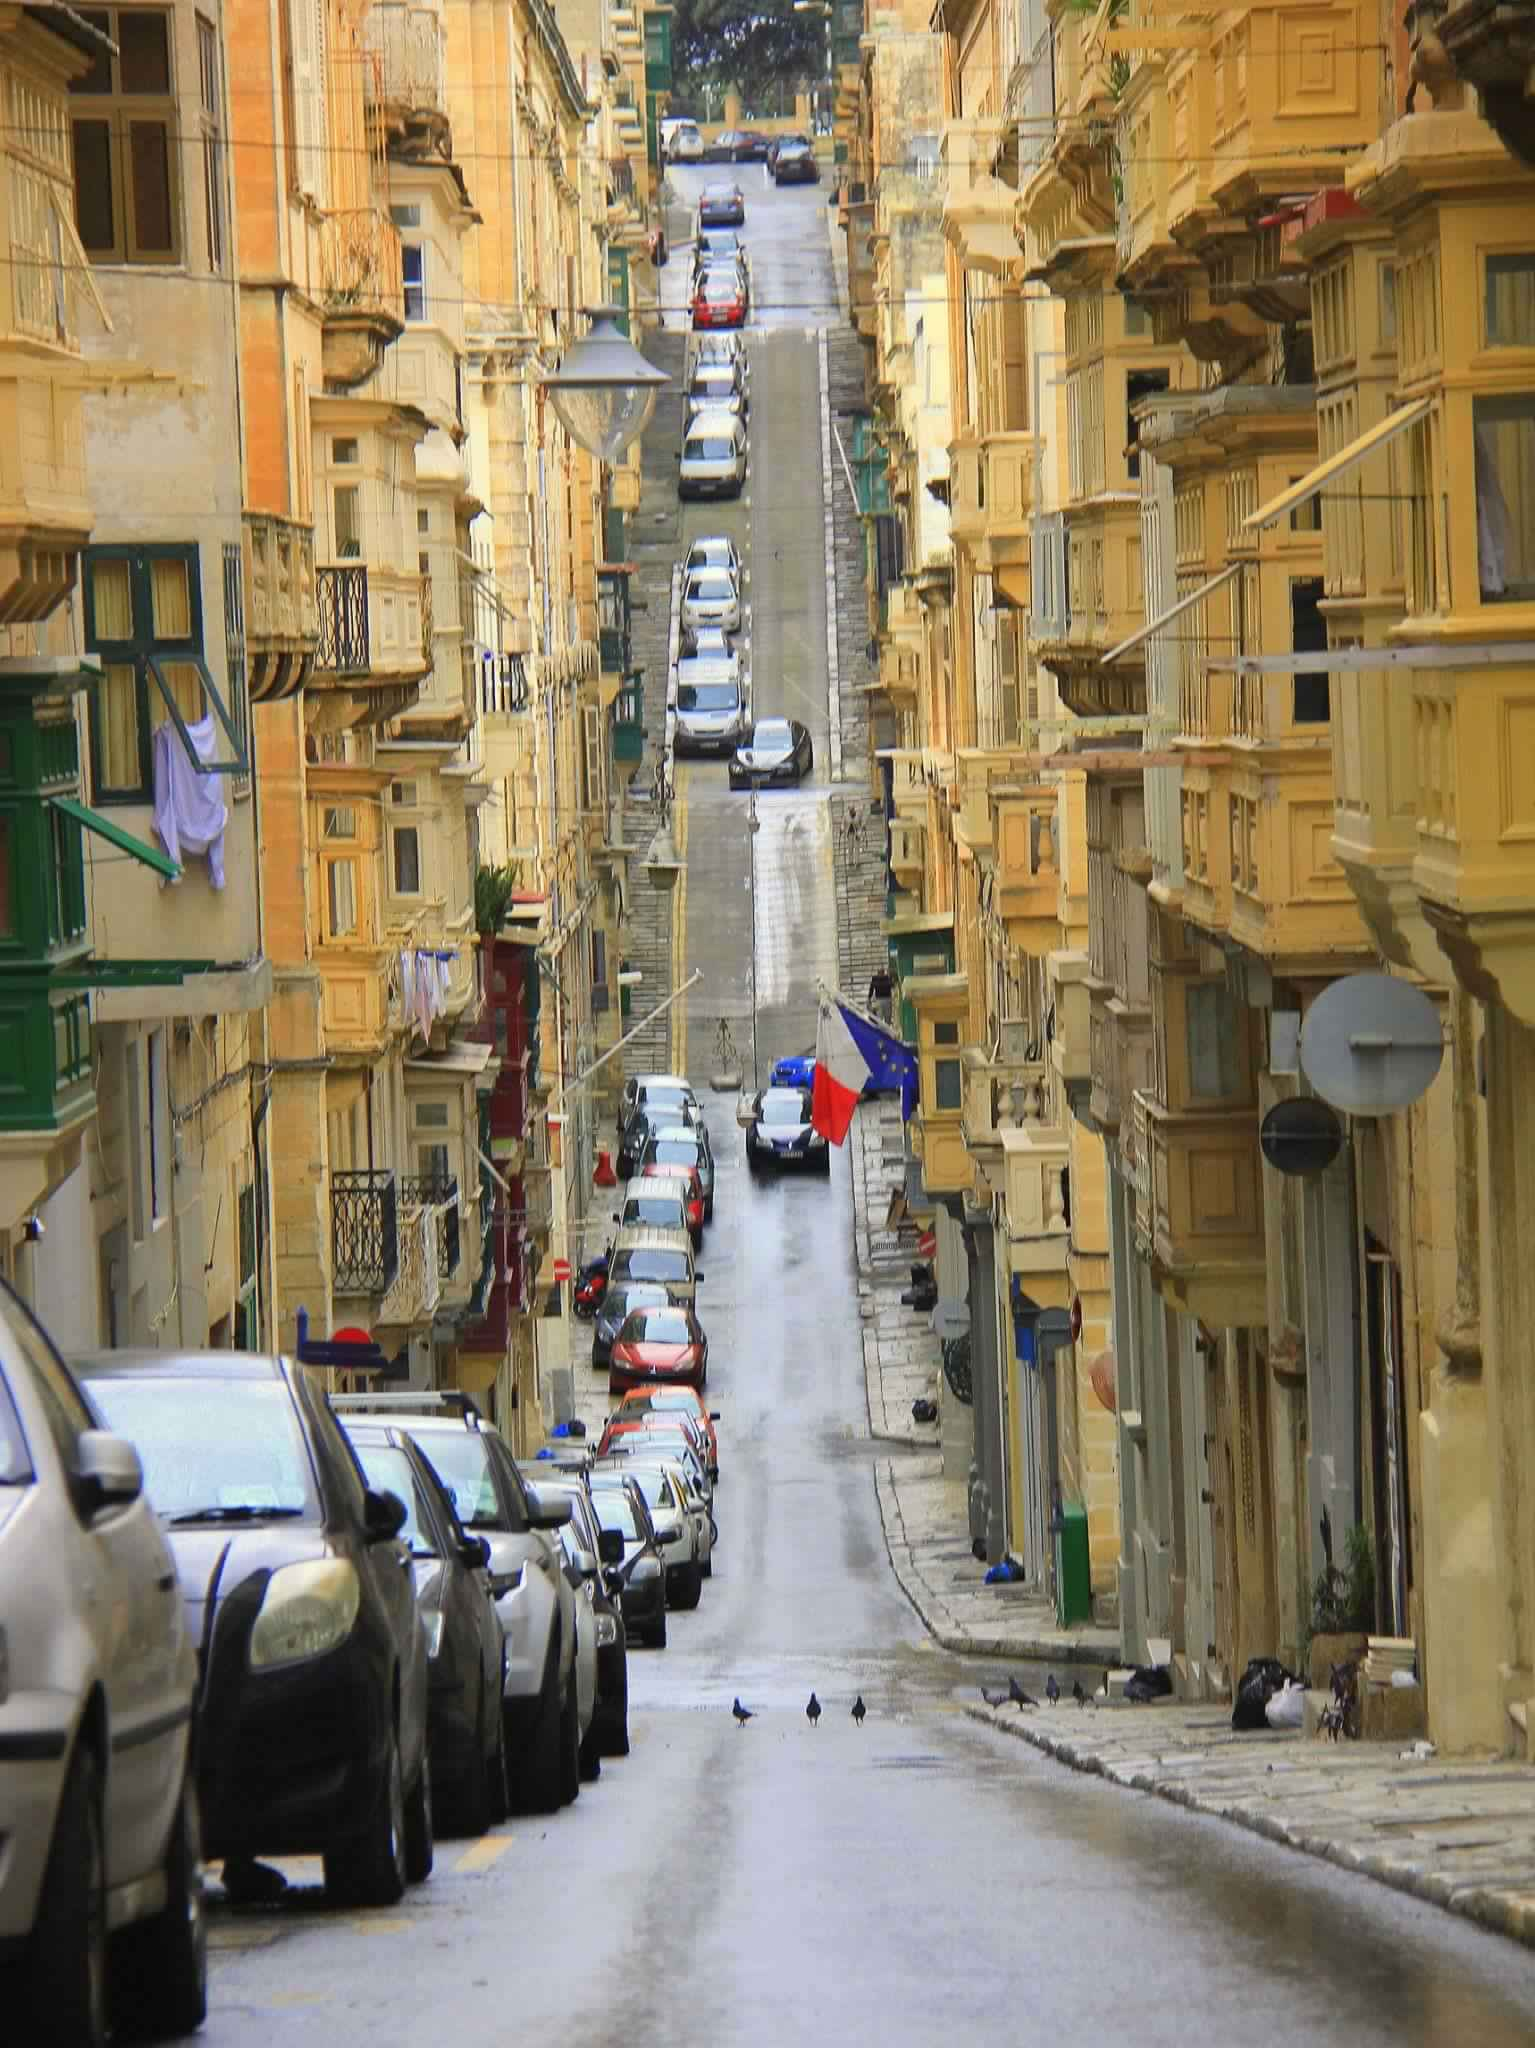 valletta is famous for steep winding roads